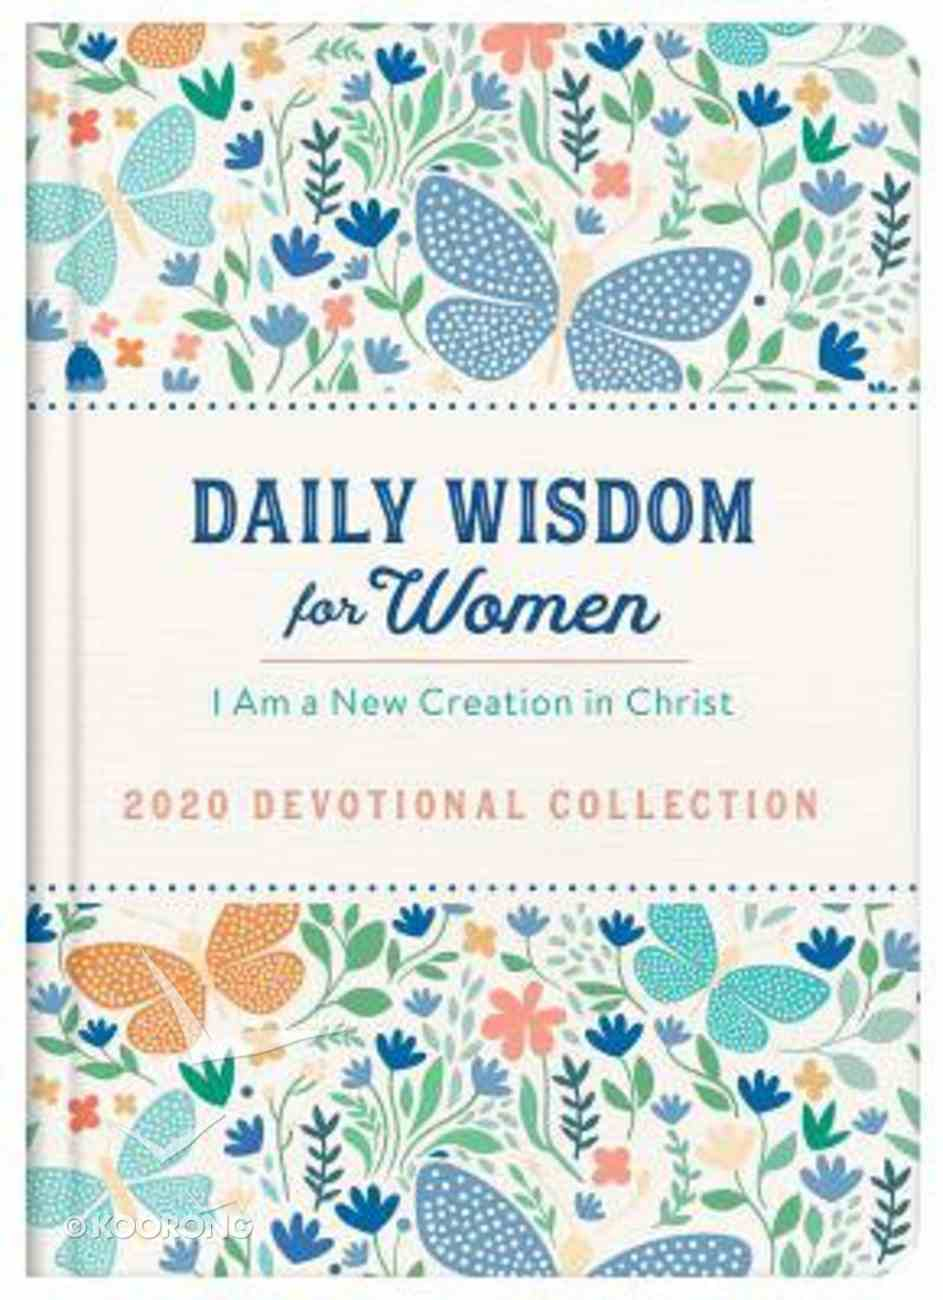 Daily Wisdom For Women 2020 Devotional Collection: I Am a New Creation in Christ Hardback